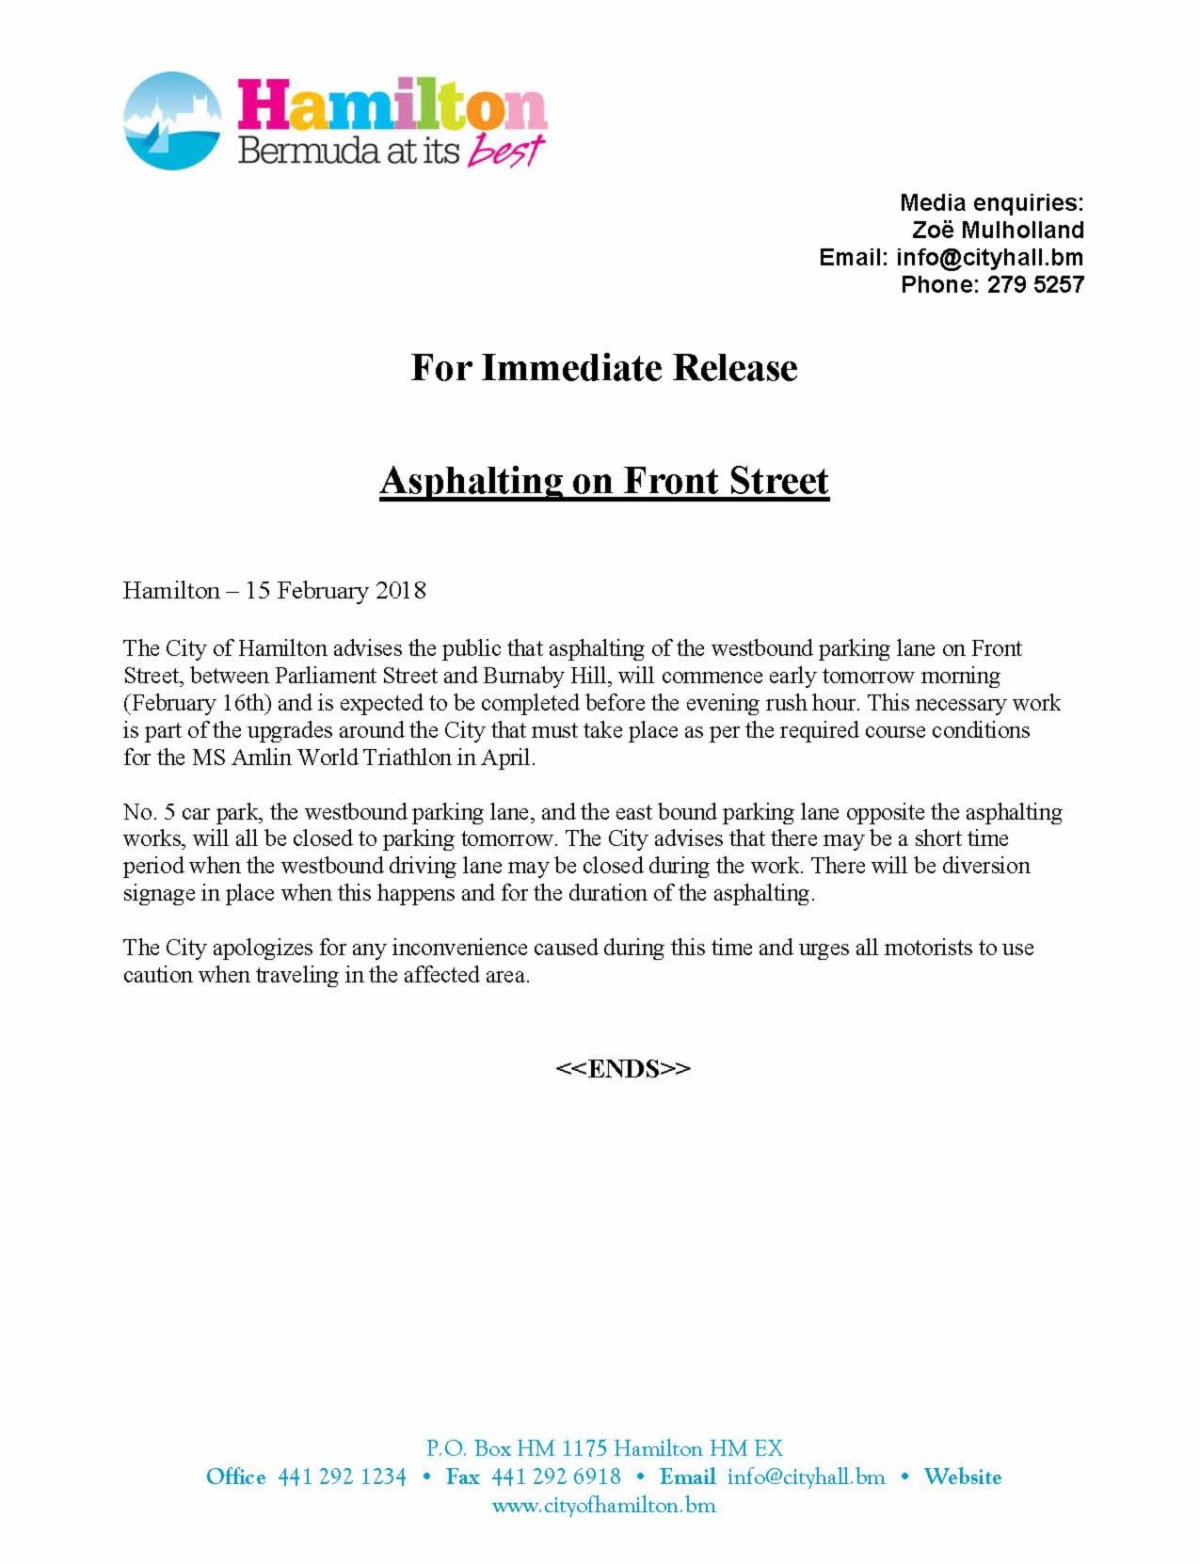 Press_Release___Front_Street_Asphalting___Feb_15